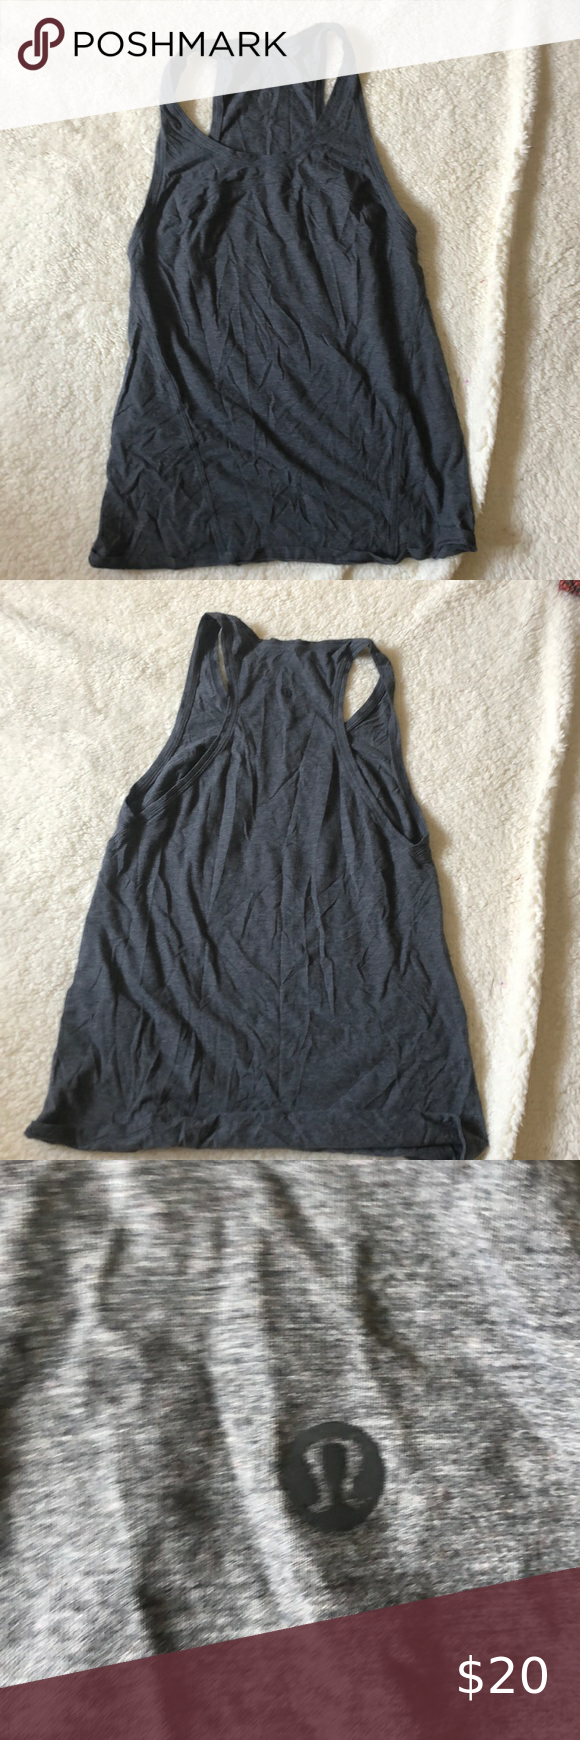 Lulu Lemon Tank Top Size 2 Lulu Lean On Tank Top Made Of Stretchy Cotton Like Material Accidentally Bought Two And Haven T Wor In 2020 Tank Tops Tops Clothes Design